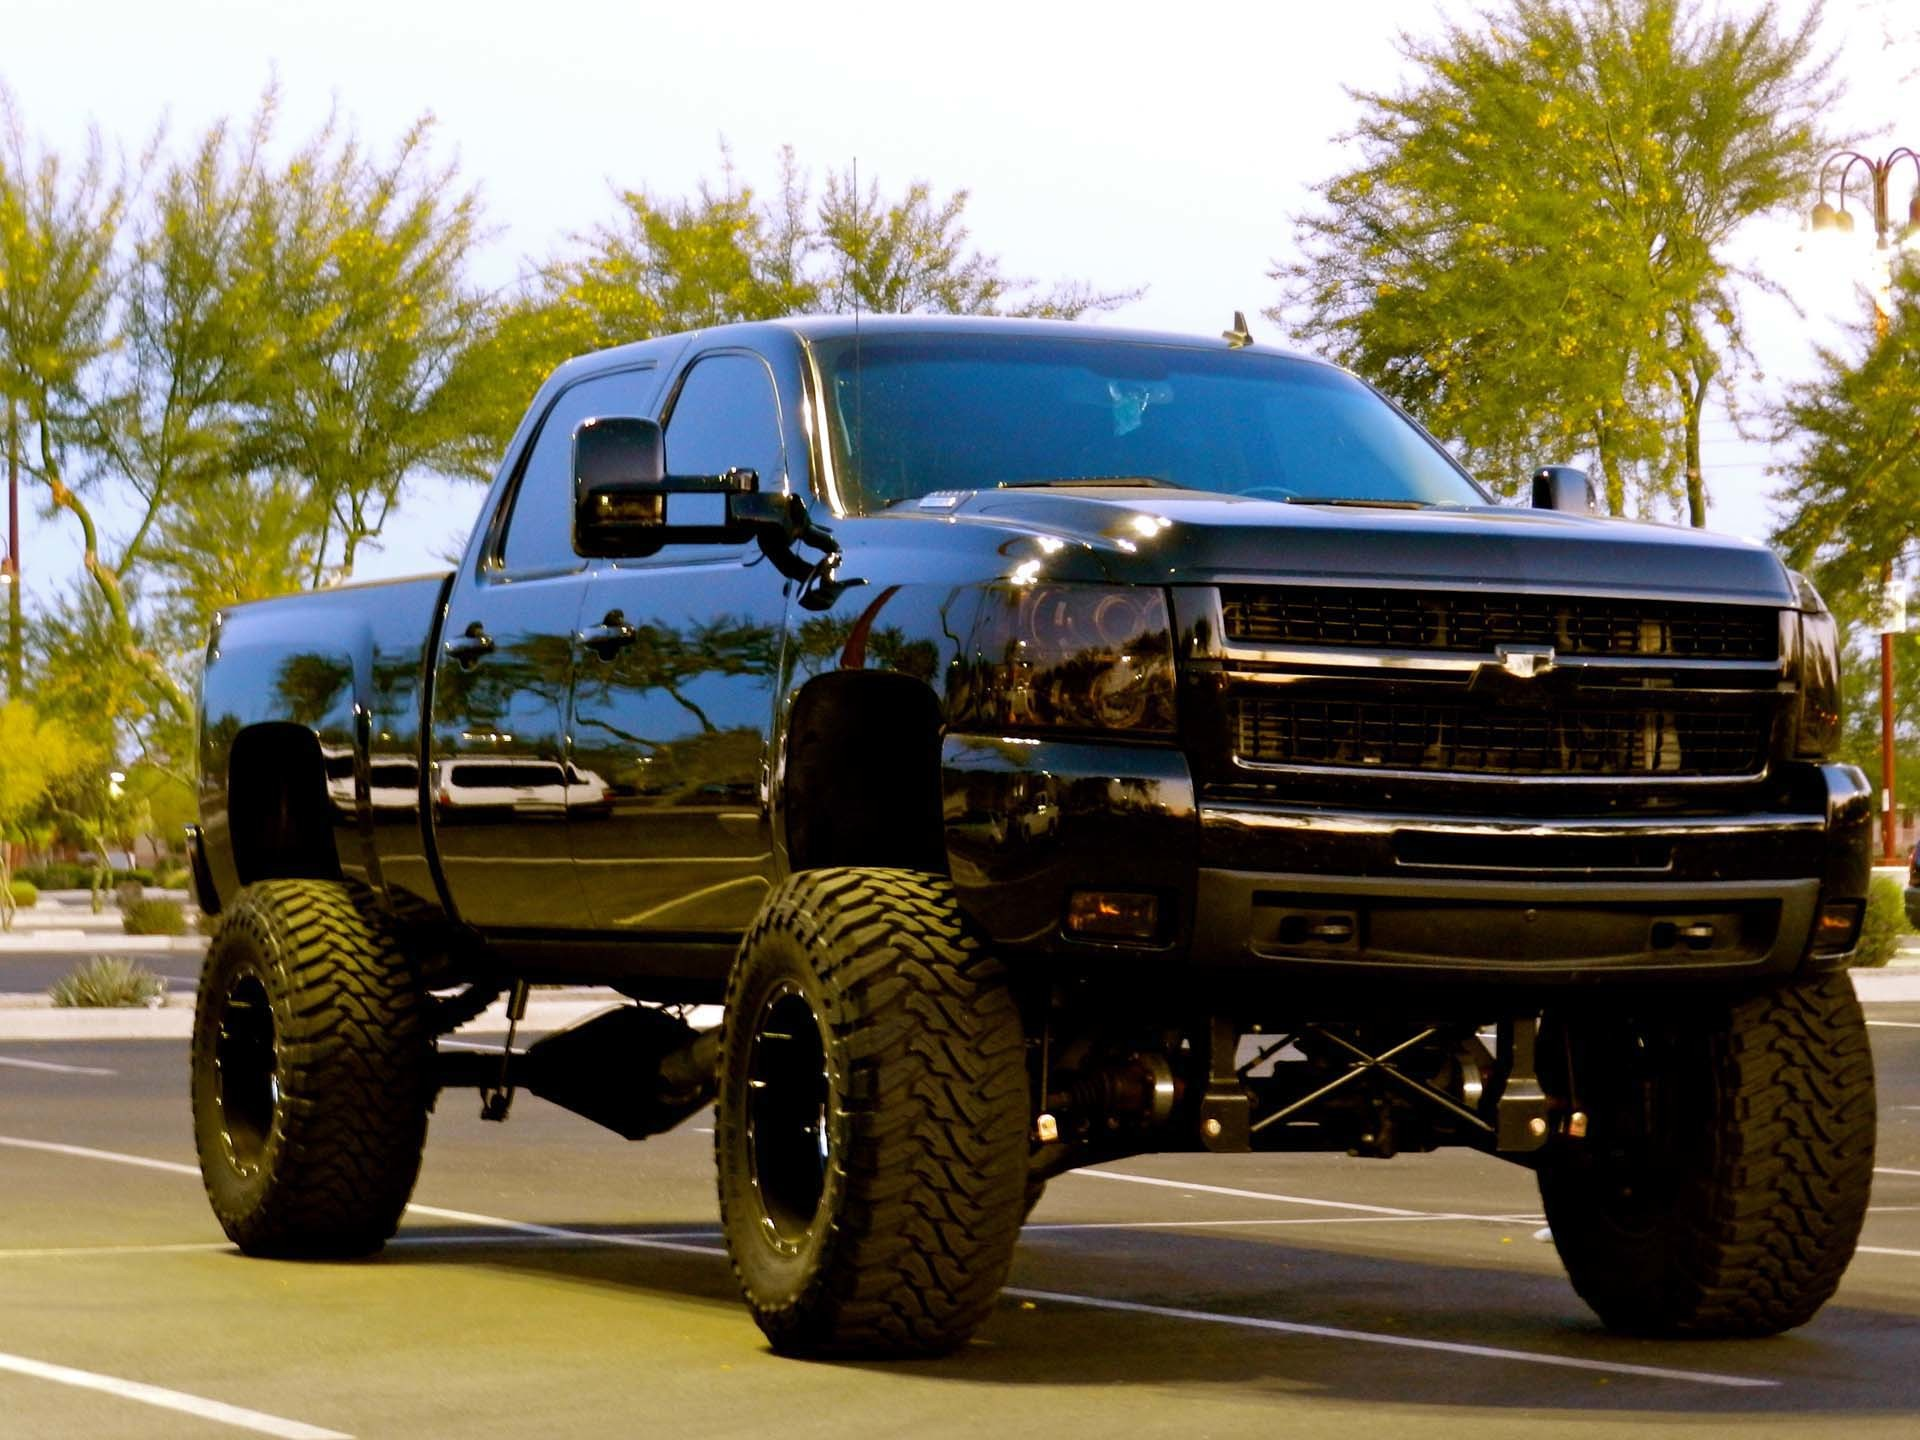 Awesome Truck Wallpapers Data Src Lifted Black Chevy Truck 1920x1440 Download Hd Wallpaper Wallpapertip